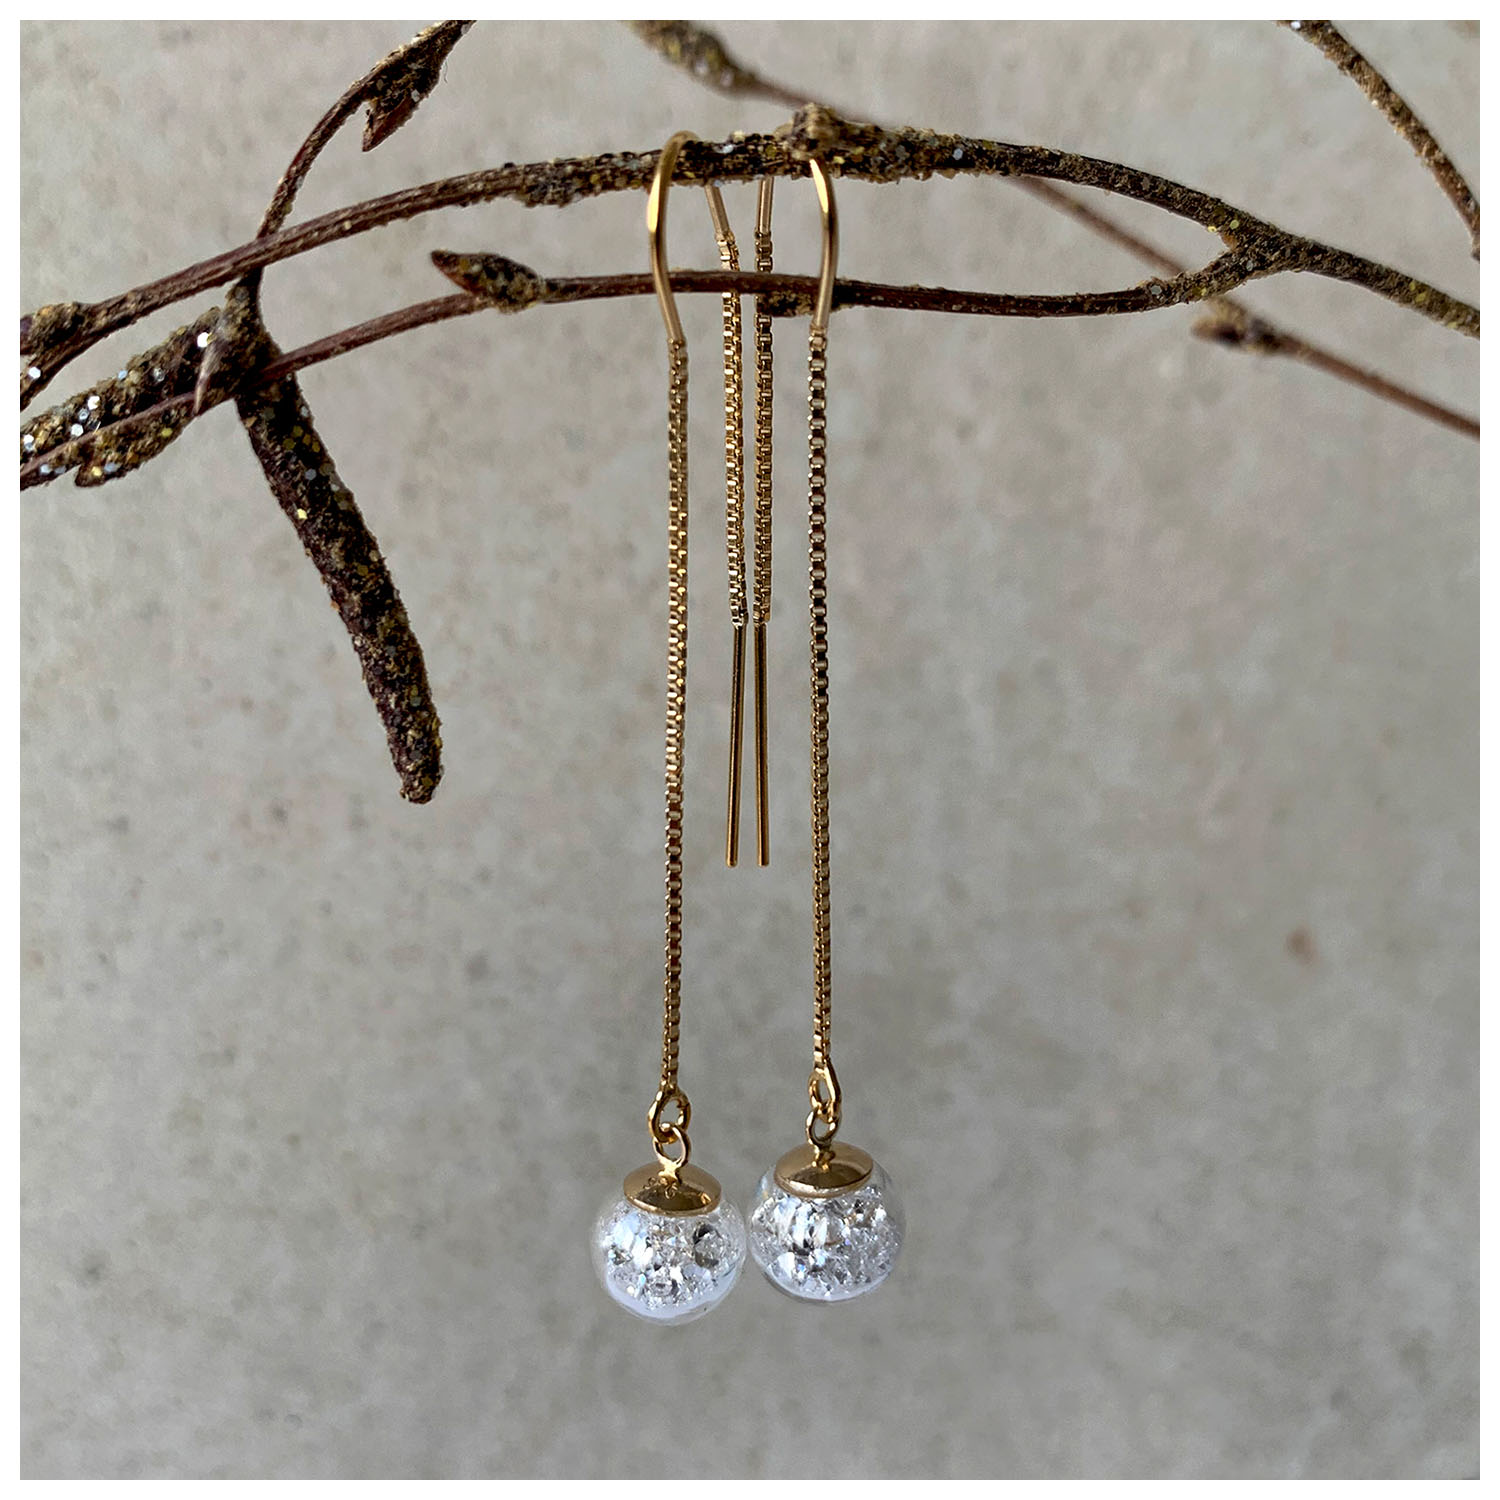 Lizzy Chambers, Crystal Drops 9ct Plated Gold, 57x8mm £75